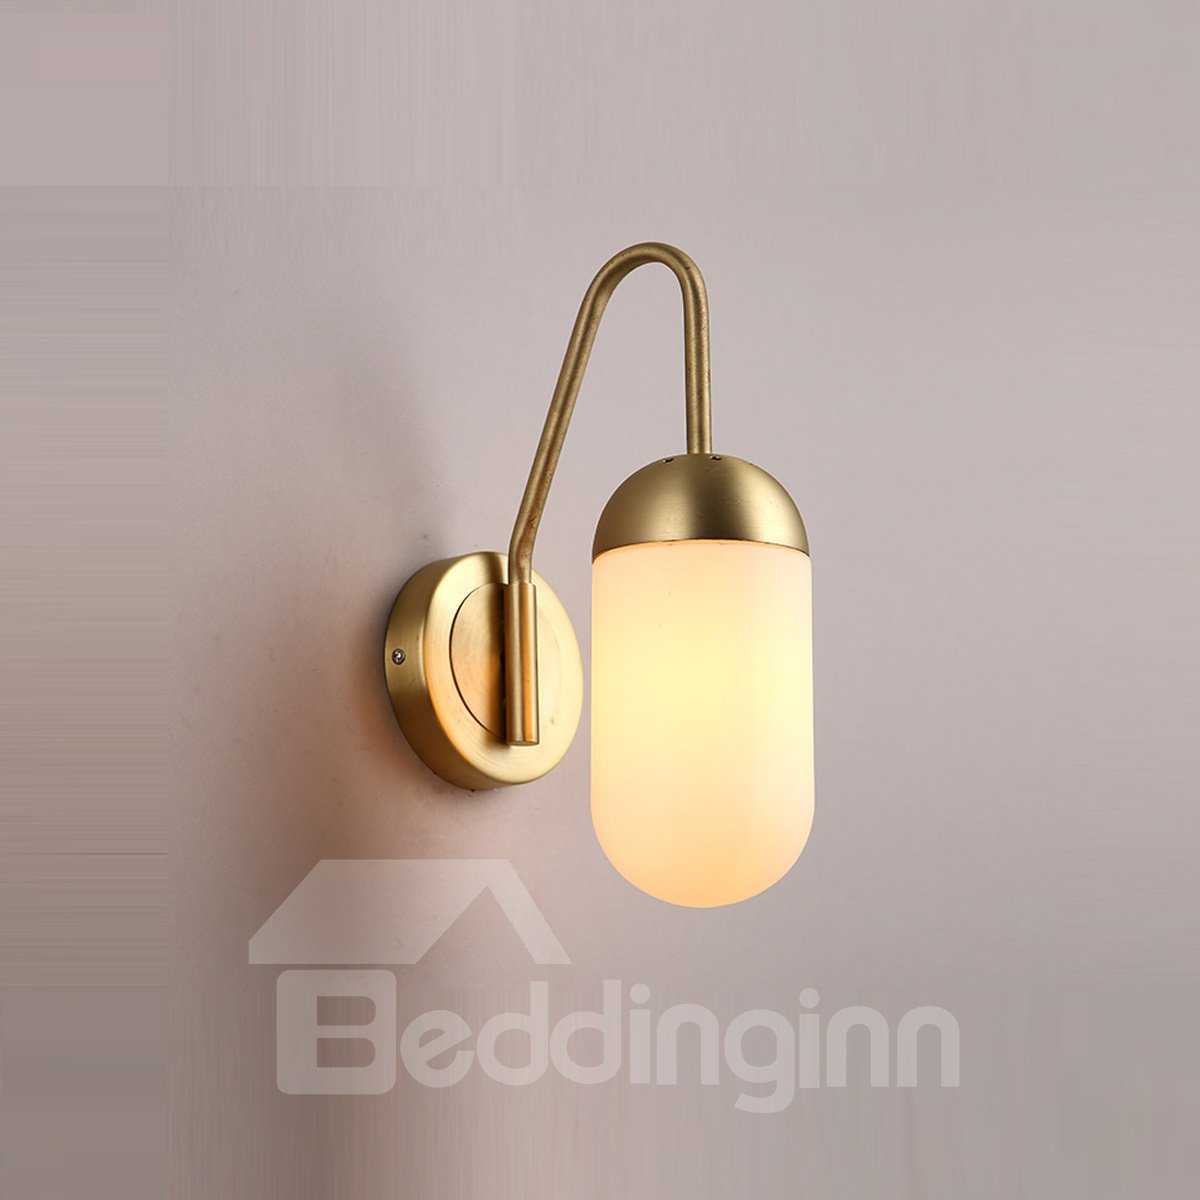 Round Basis and Oval-Shaped Design Hardware and Glass 1-Bulb Wall Light